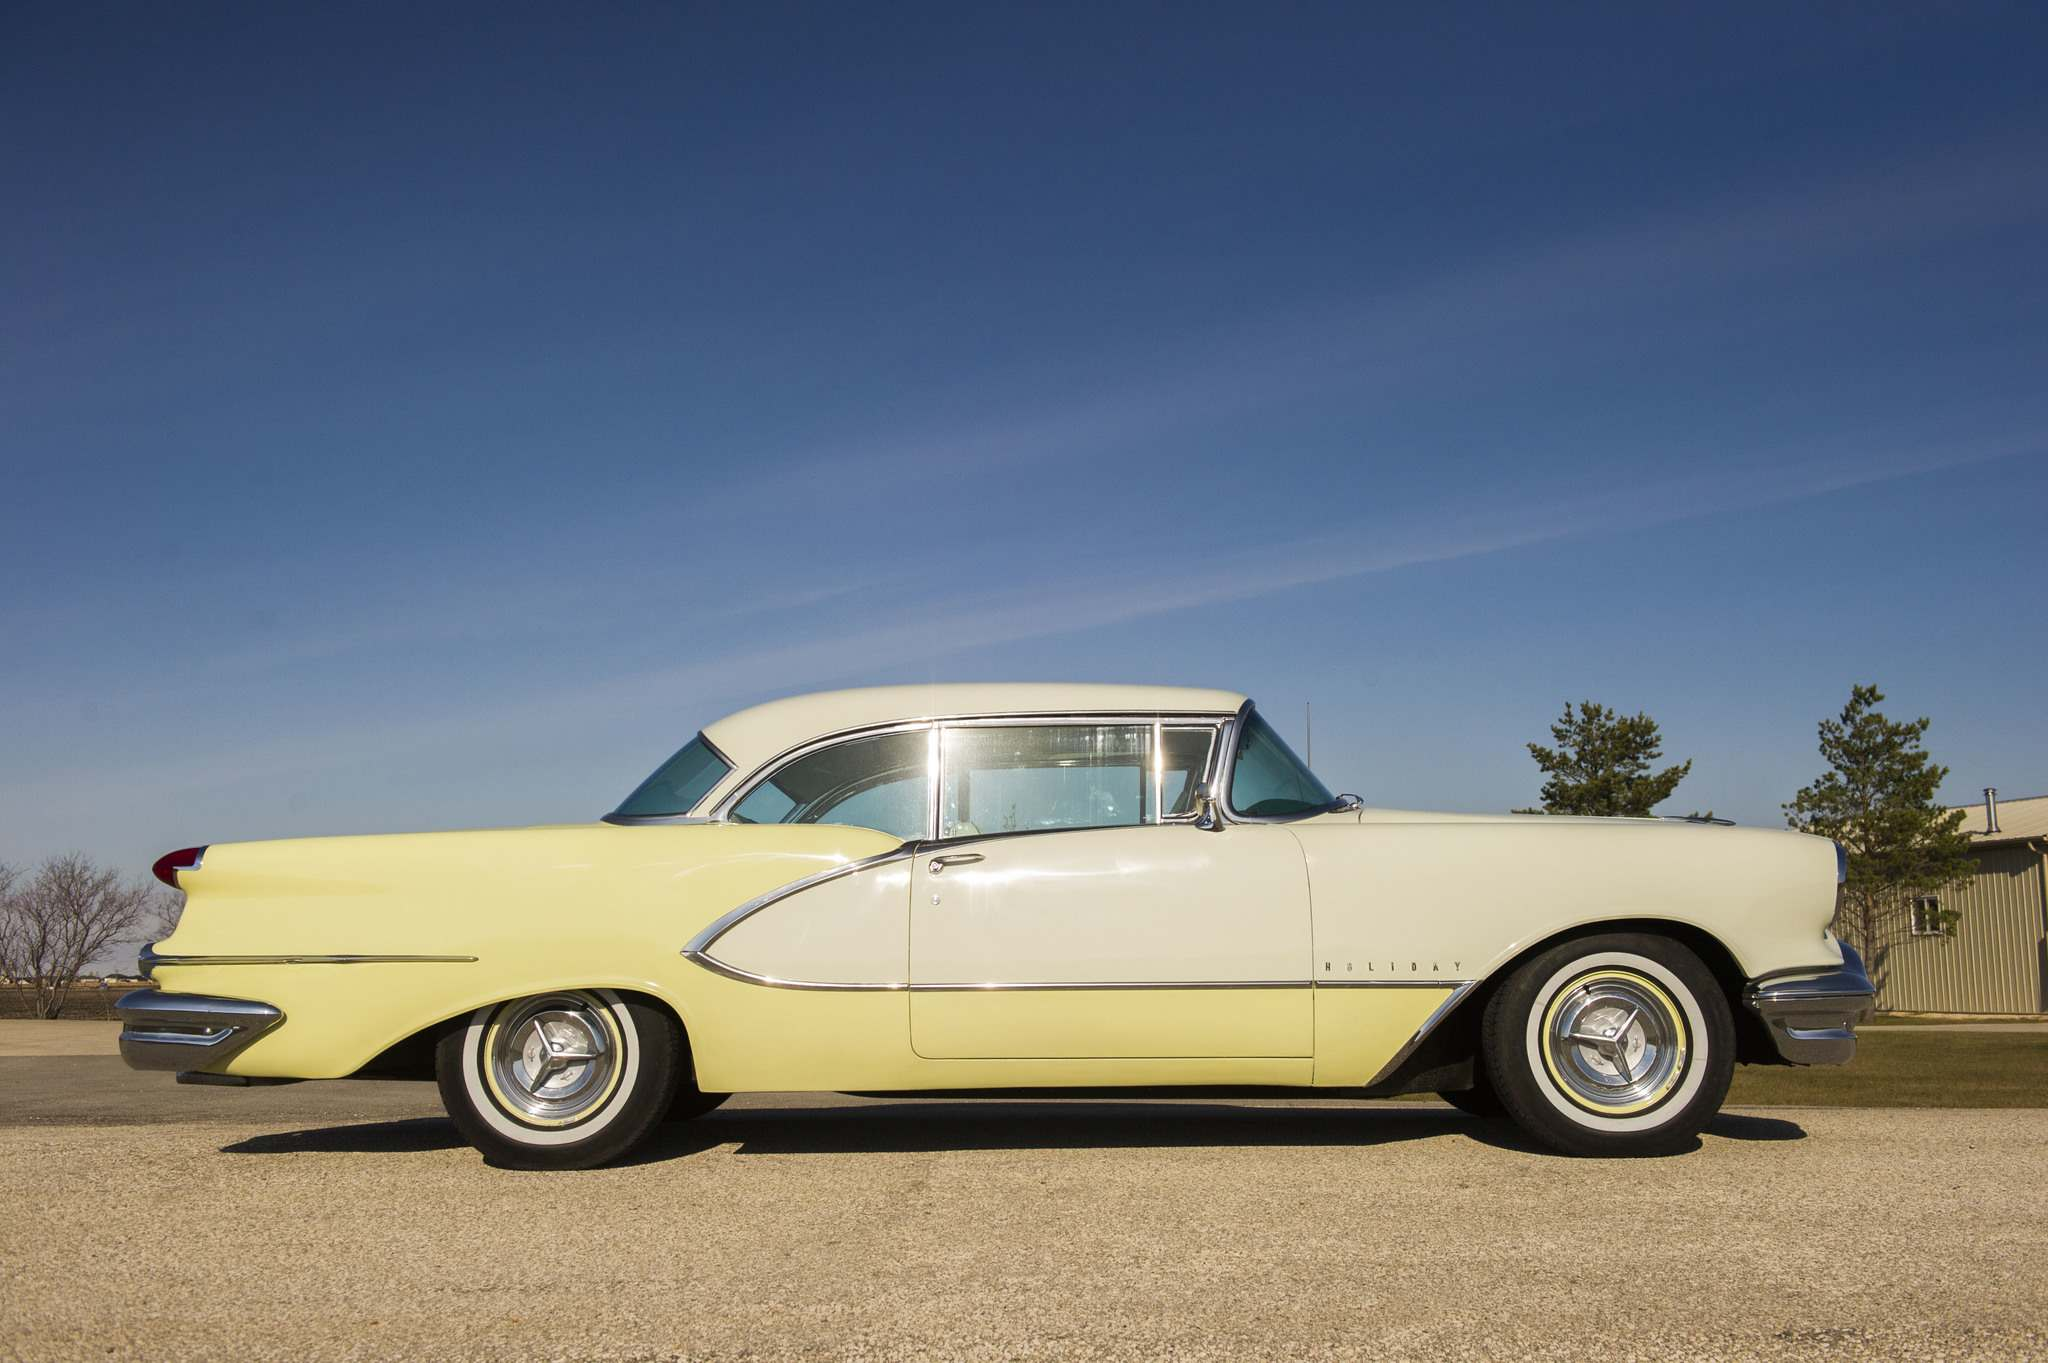 This 1956 Oldsmobile 98 two-door hardtop still has its original, two-tone paint colours of Citron Cream and Antique White.